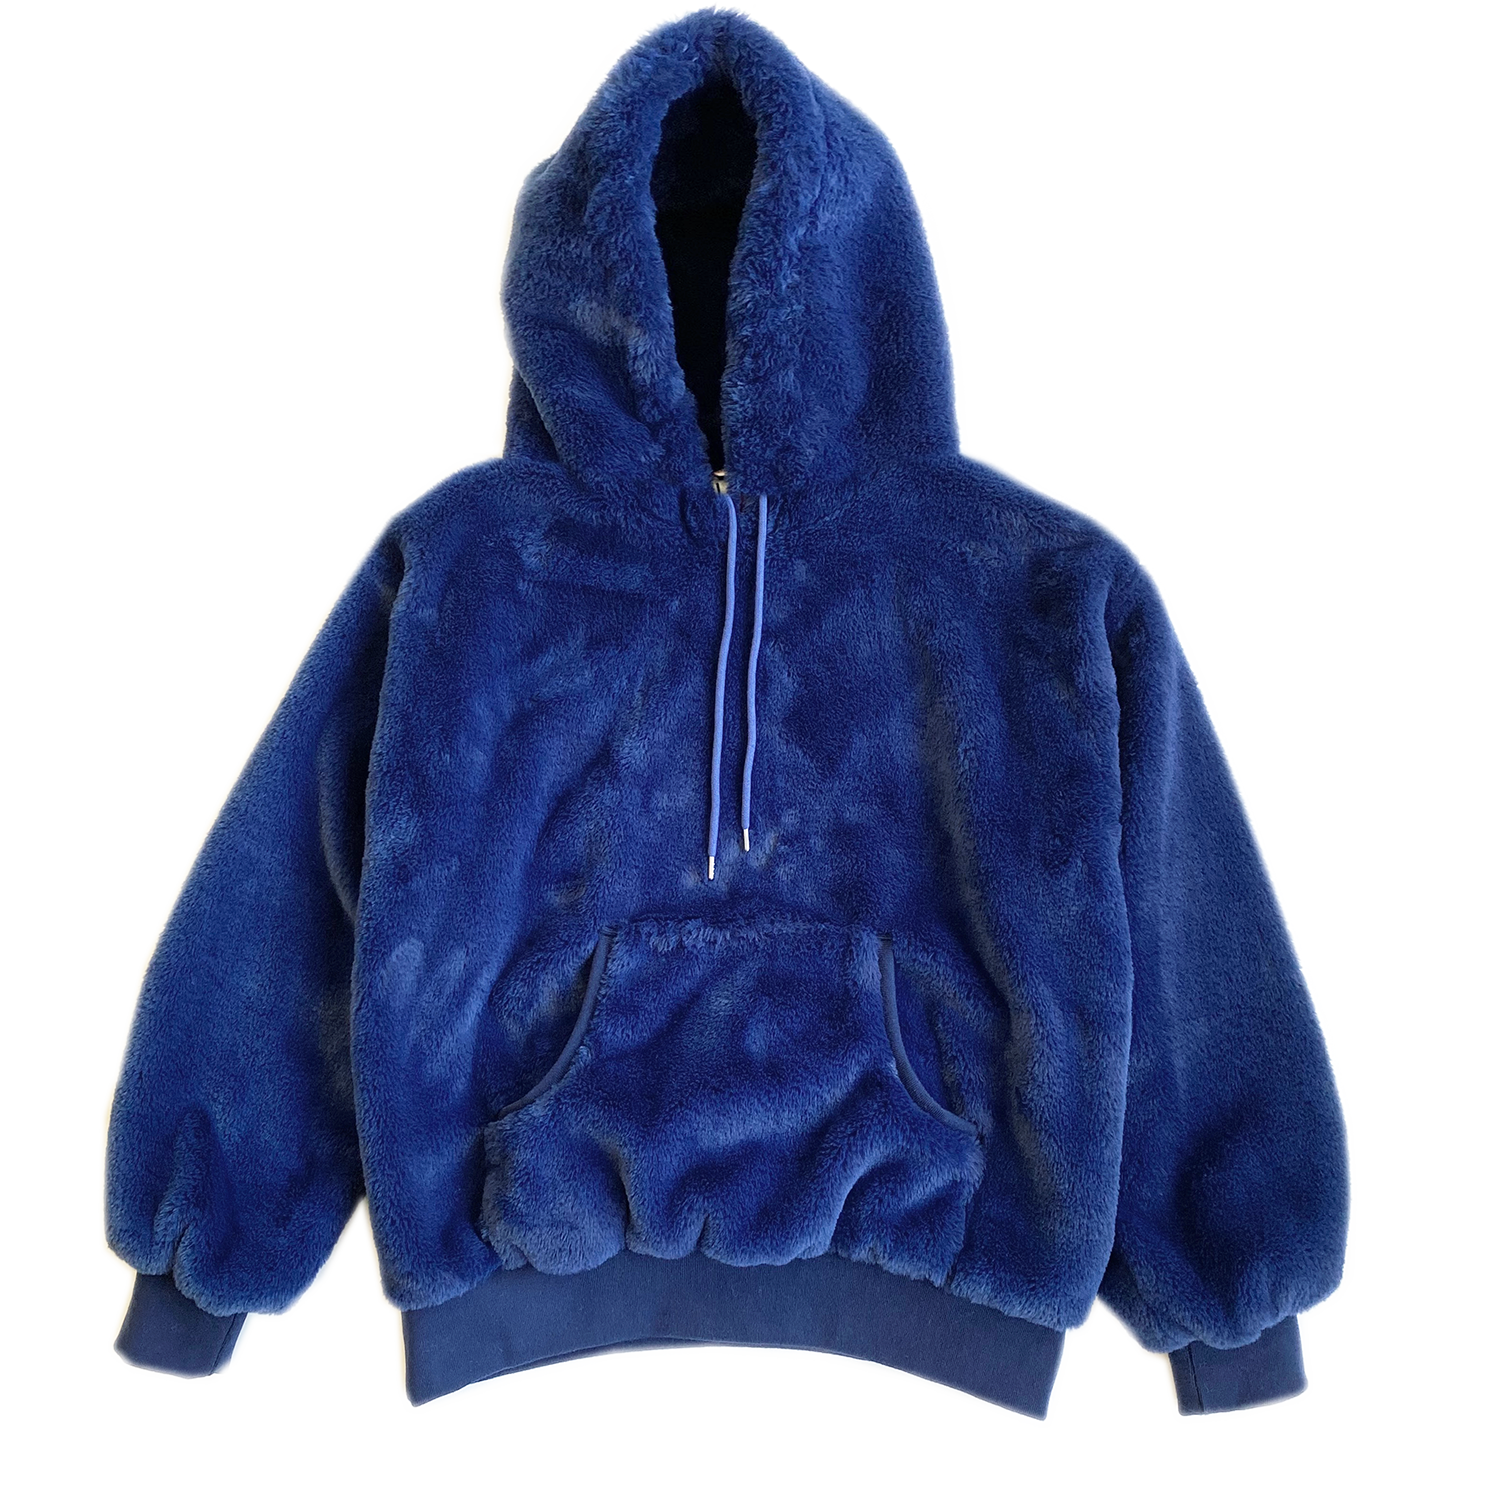 100% Recycled Teddy Hoodie - Marine Blue - House of Fluff